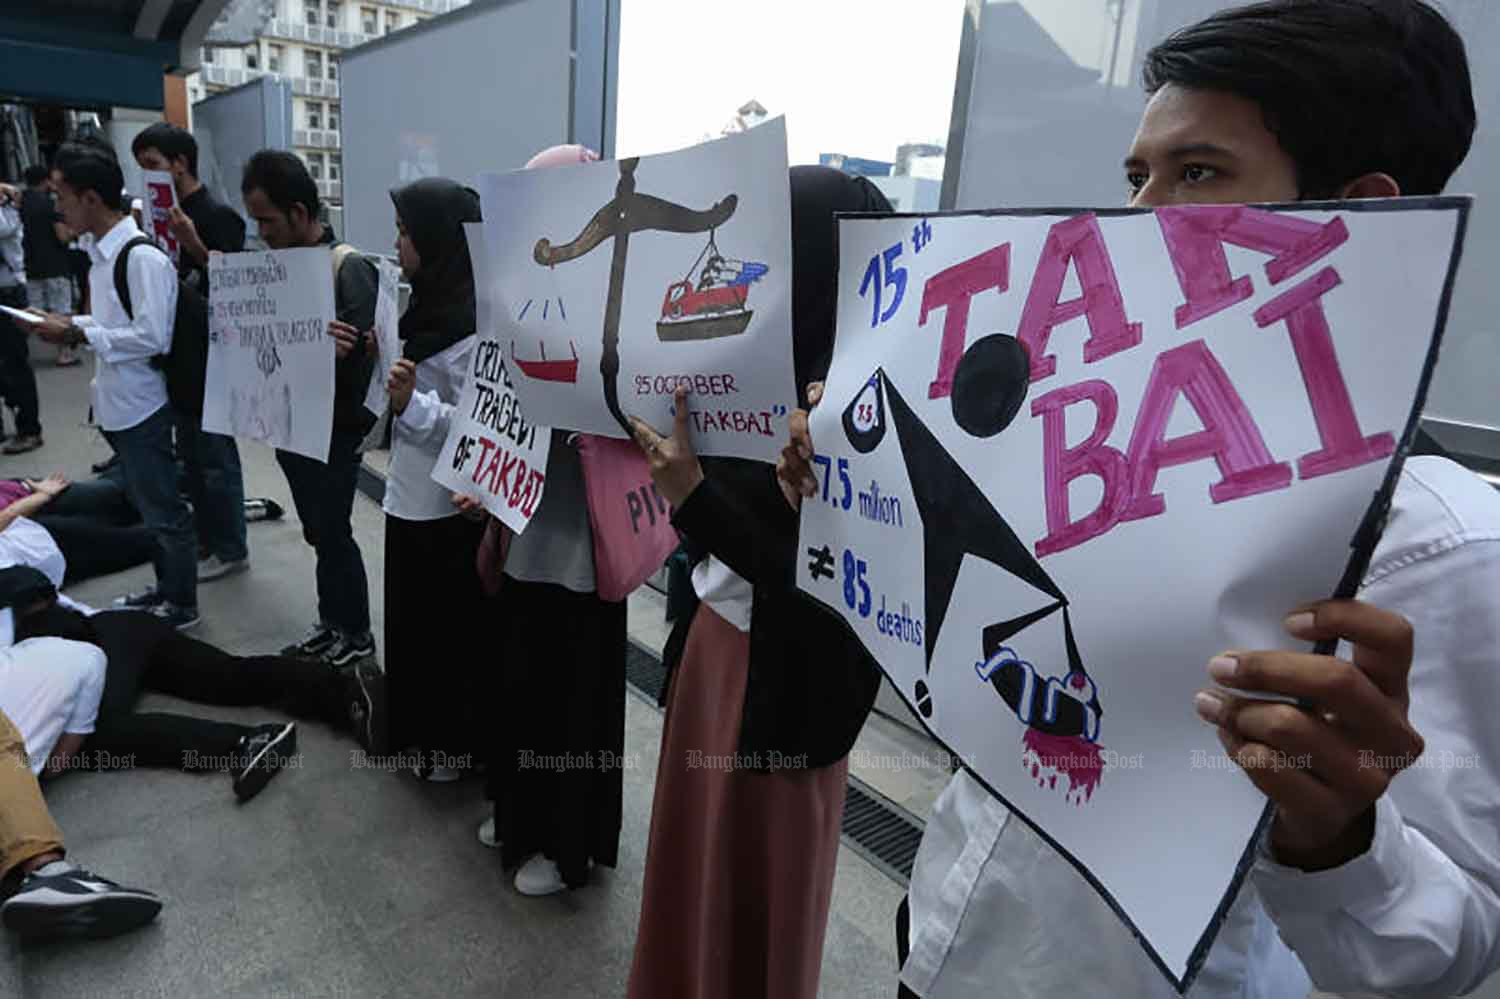 Justice still sought for Tak Bai deaths